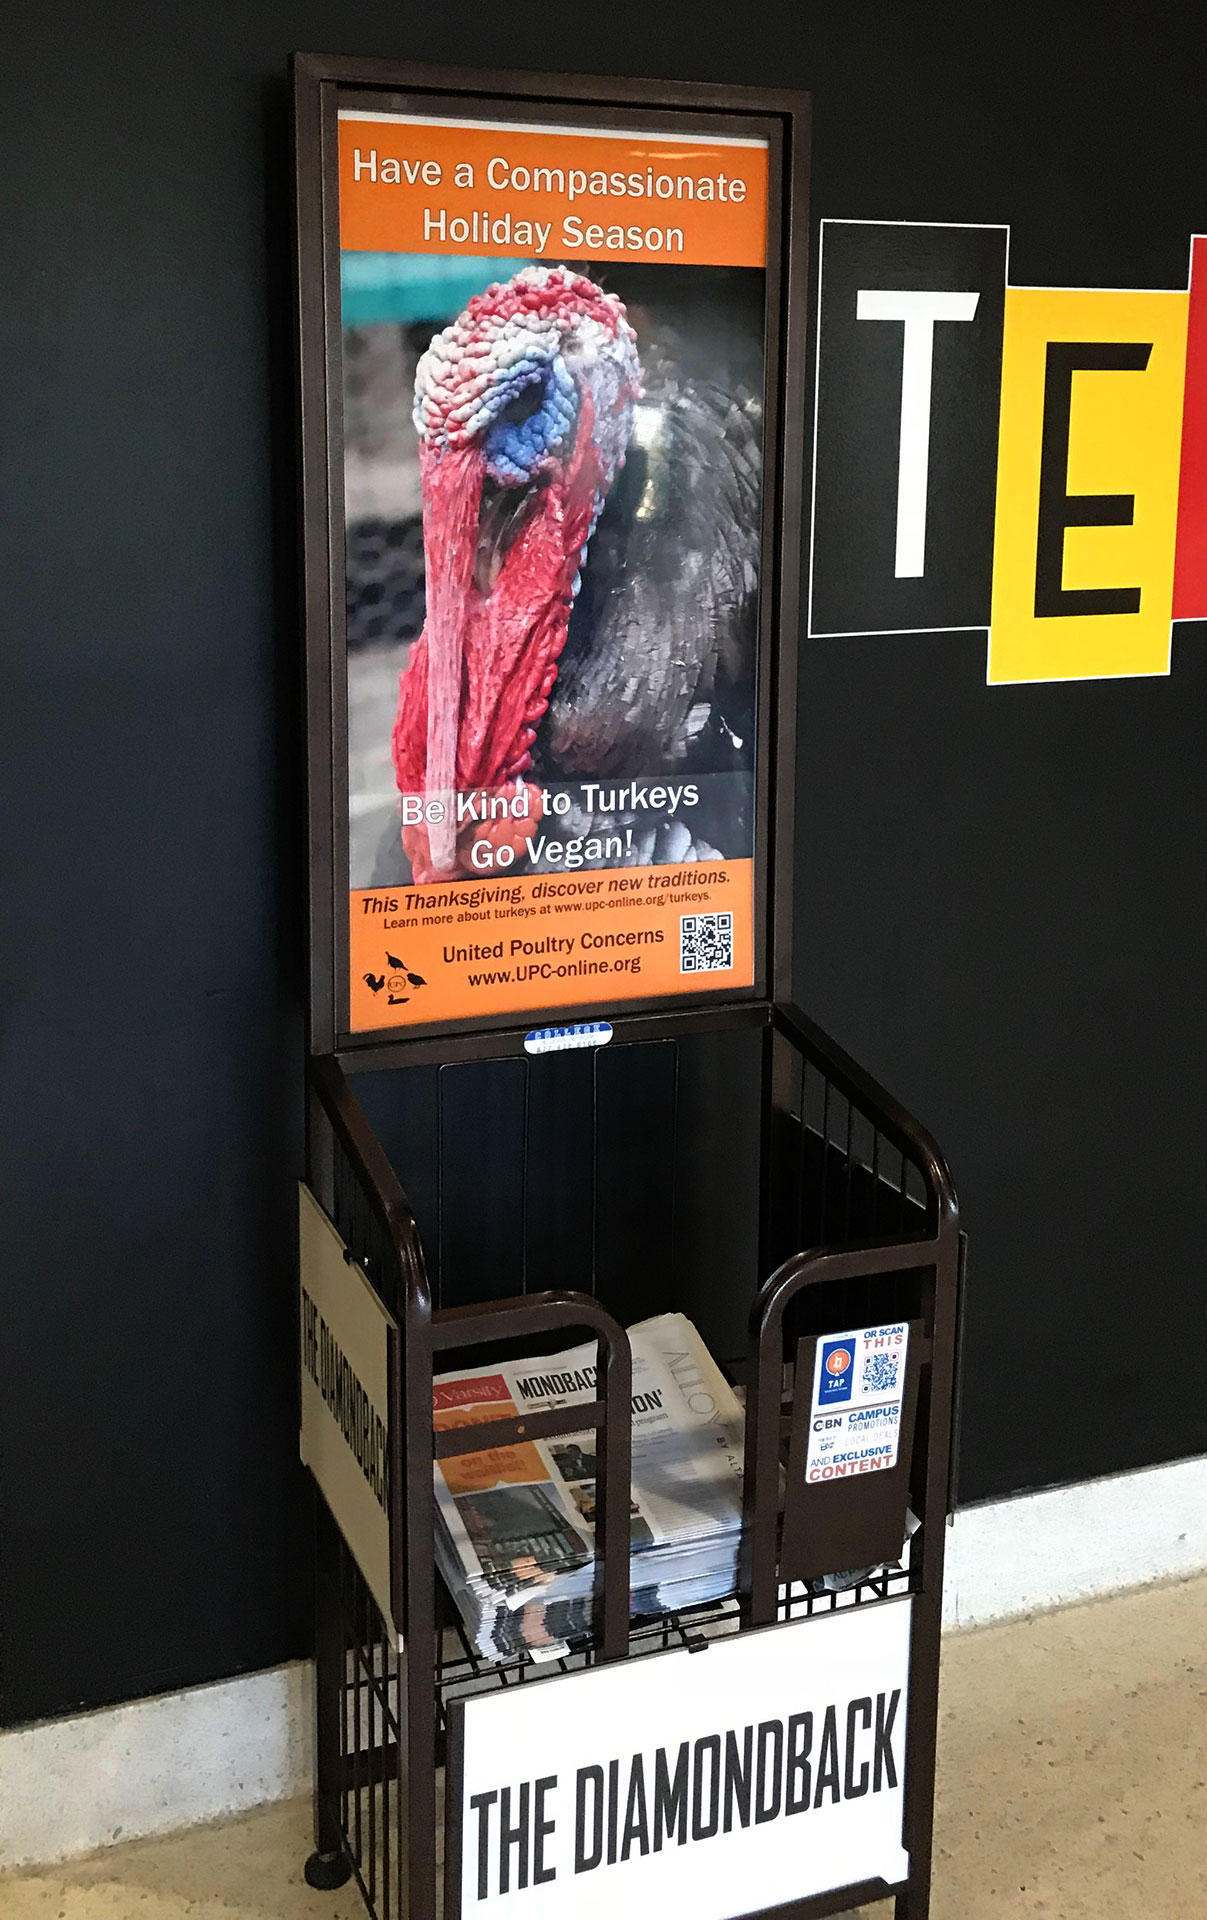 UPC Compassion for Turkeys poster in the UMD Student Union